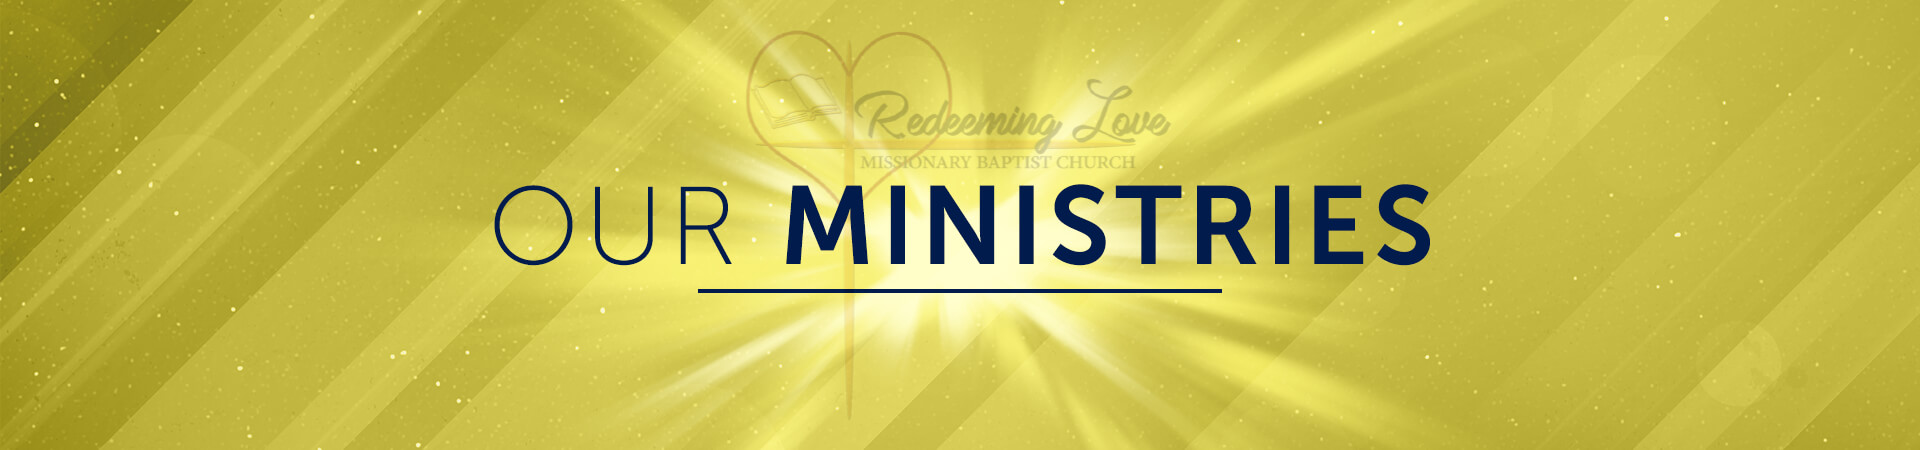 Banner Ministries